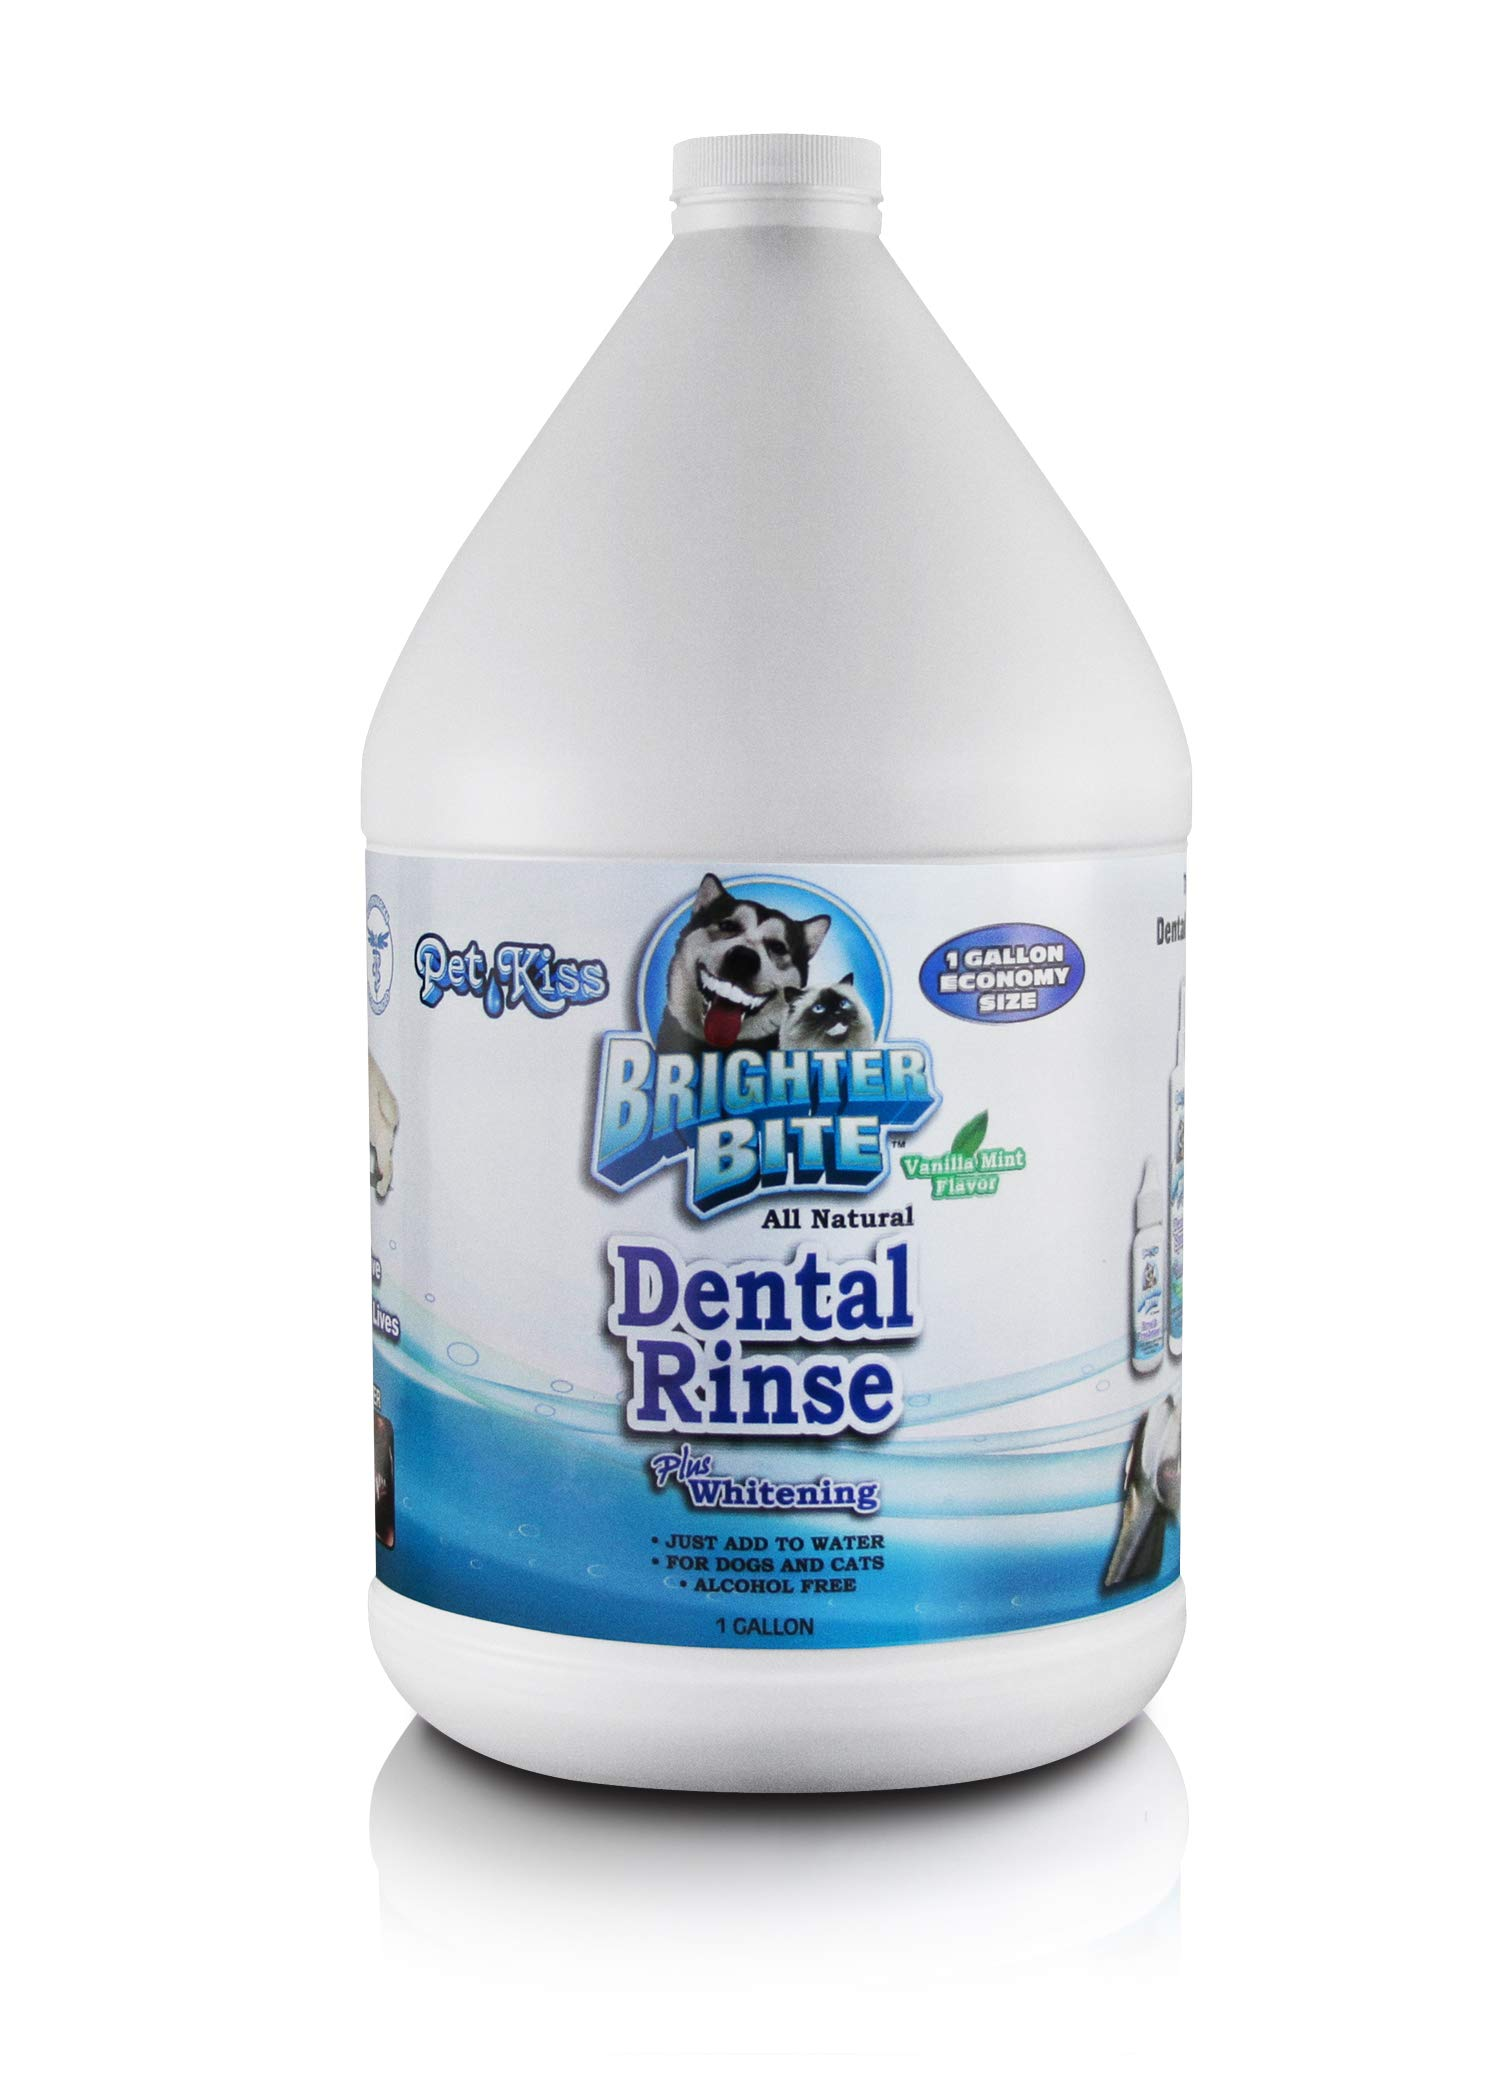 Pet Kiss Brighter Bite Dental Rinse for Pets, 1-Gallon